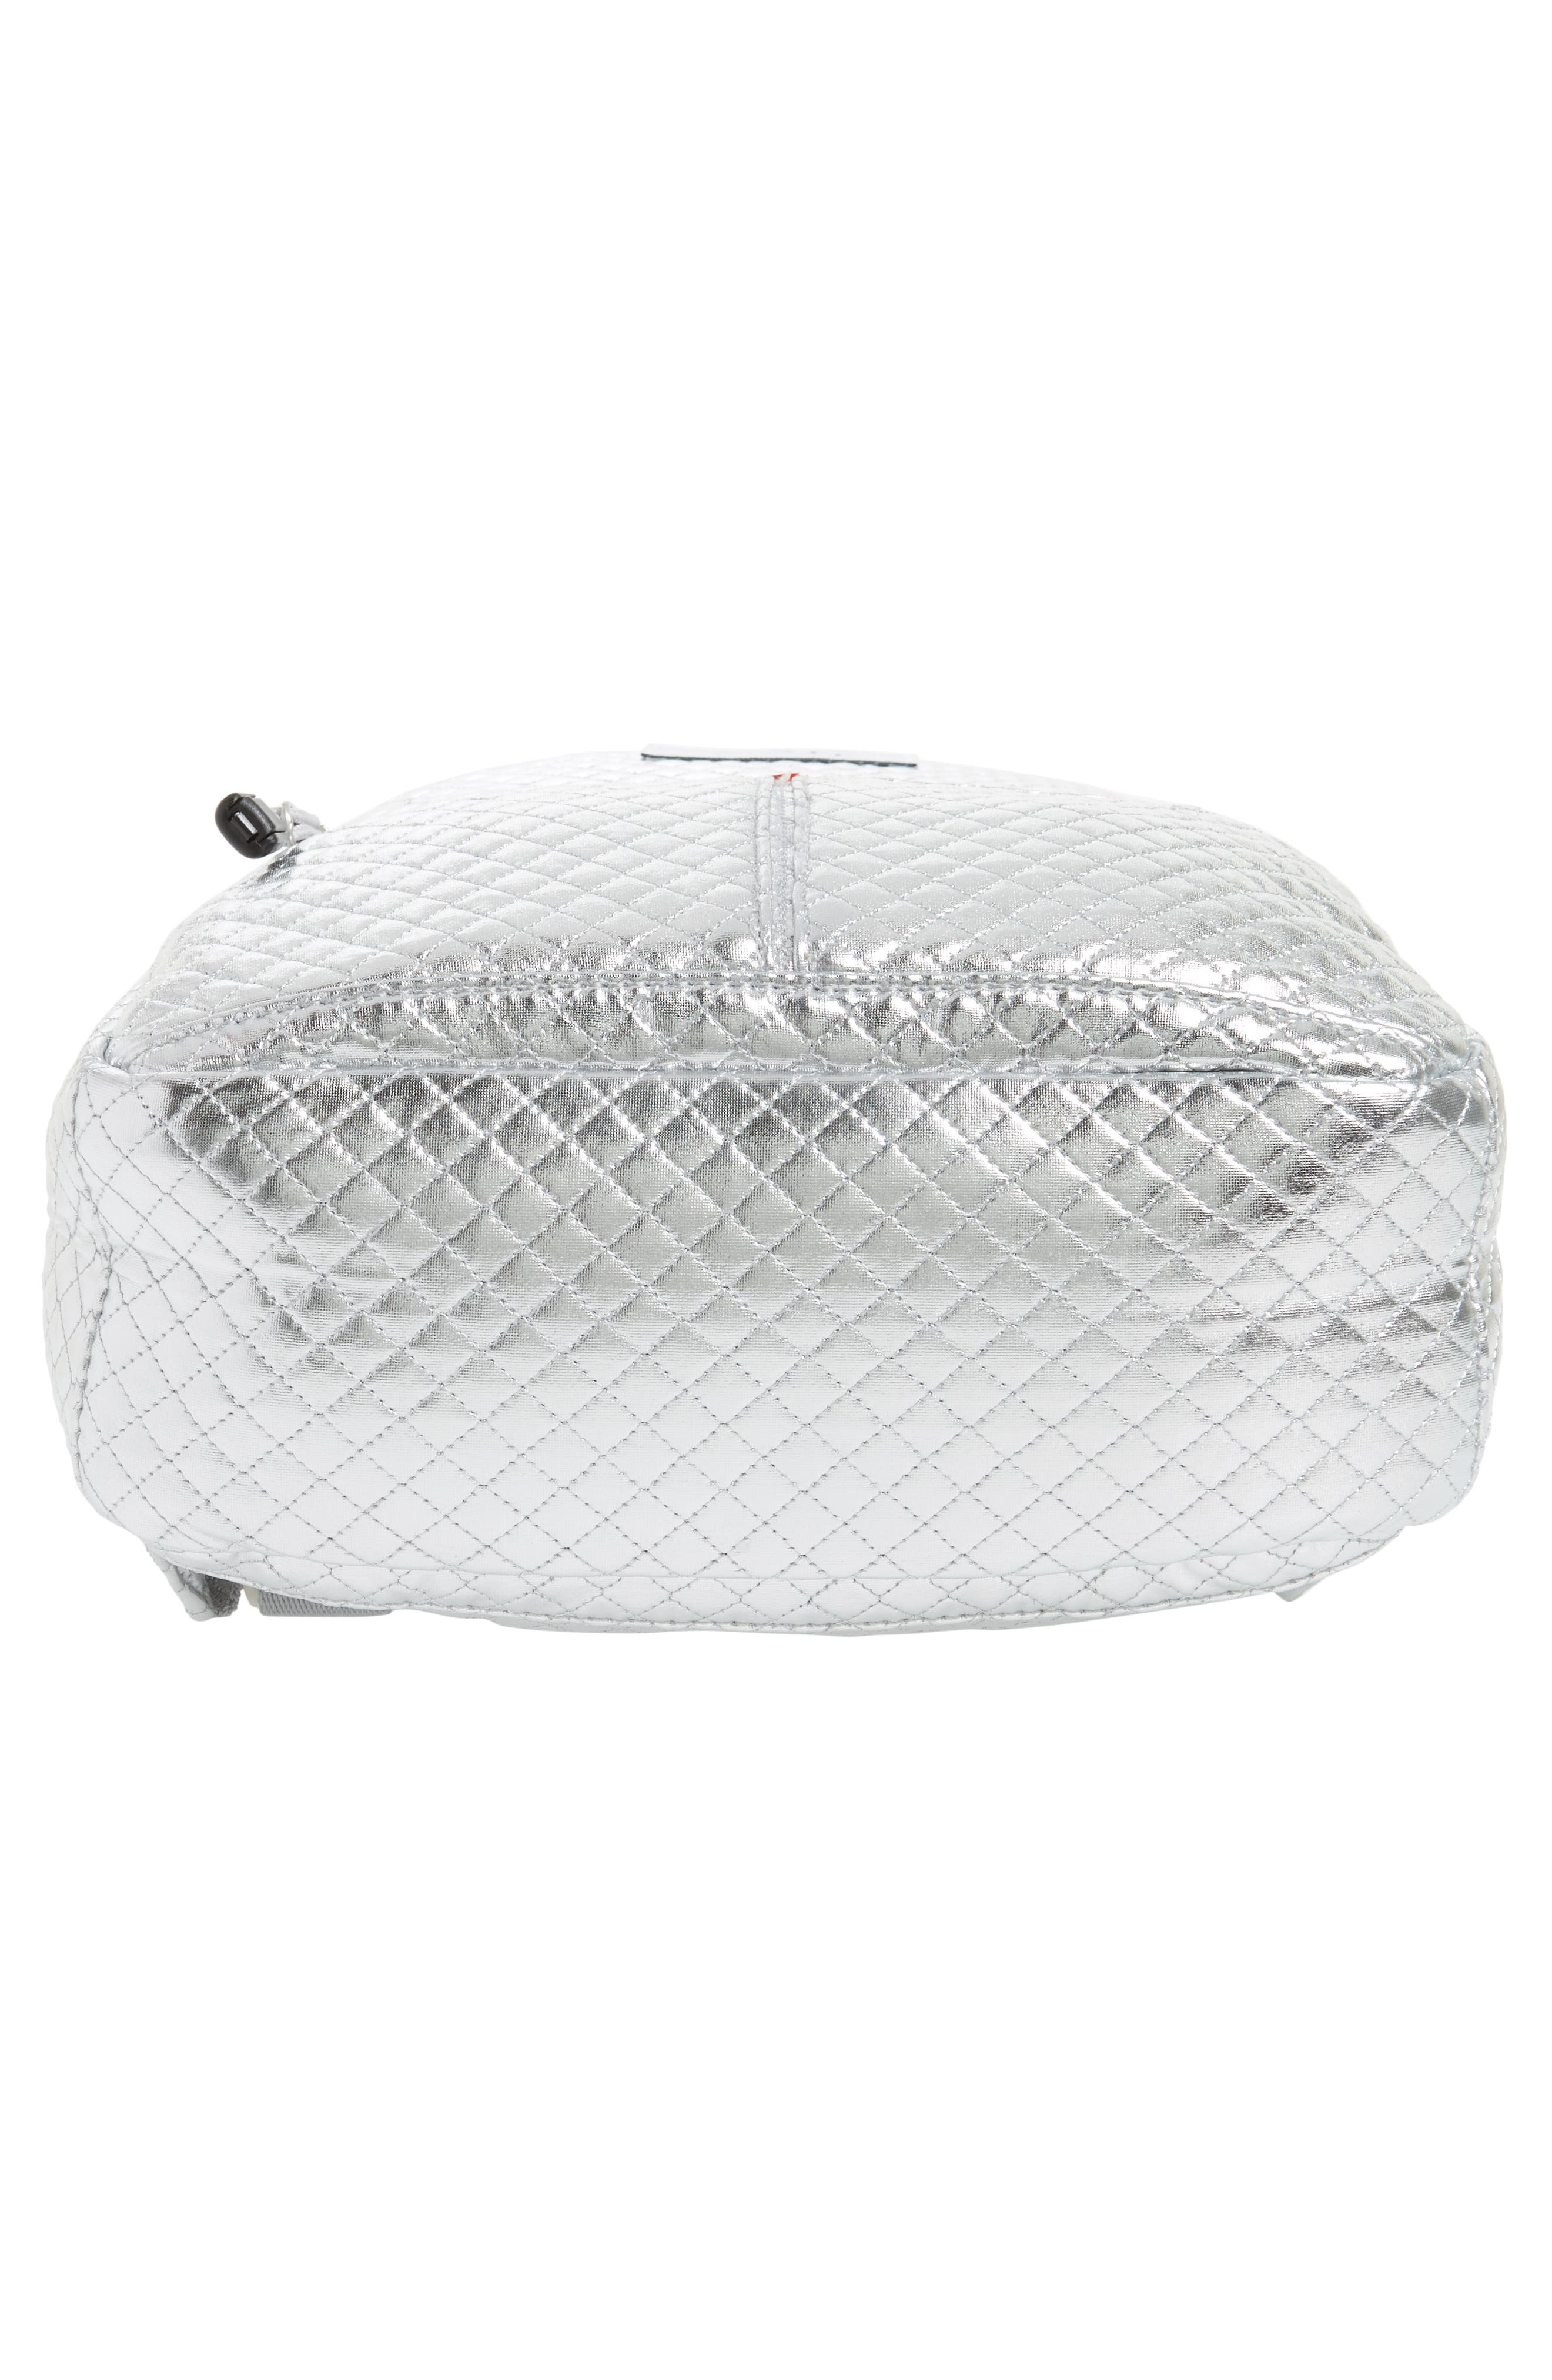 Flatbush Mini Kane Backpack,                             Alternate thumbnail 6, color,                             Silver Quilted